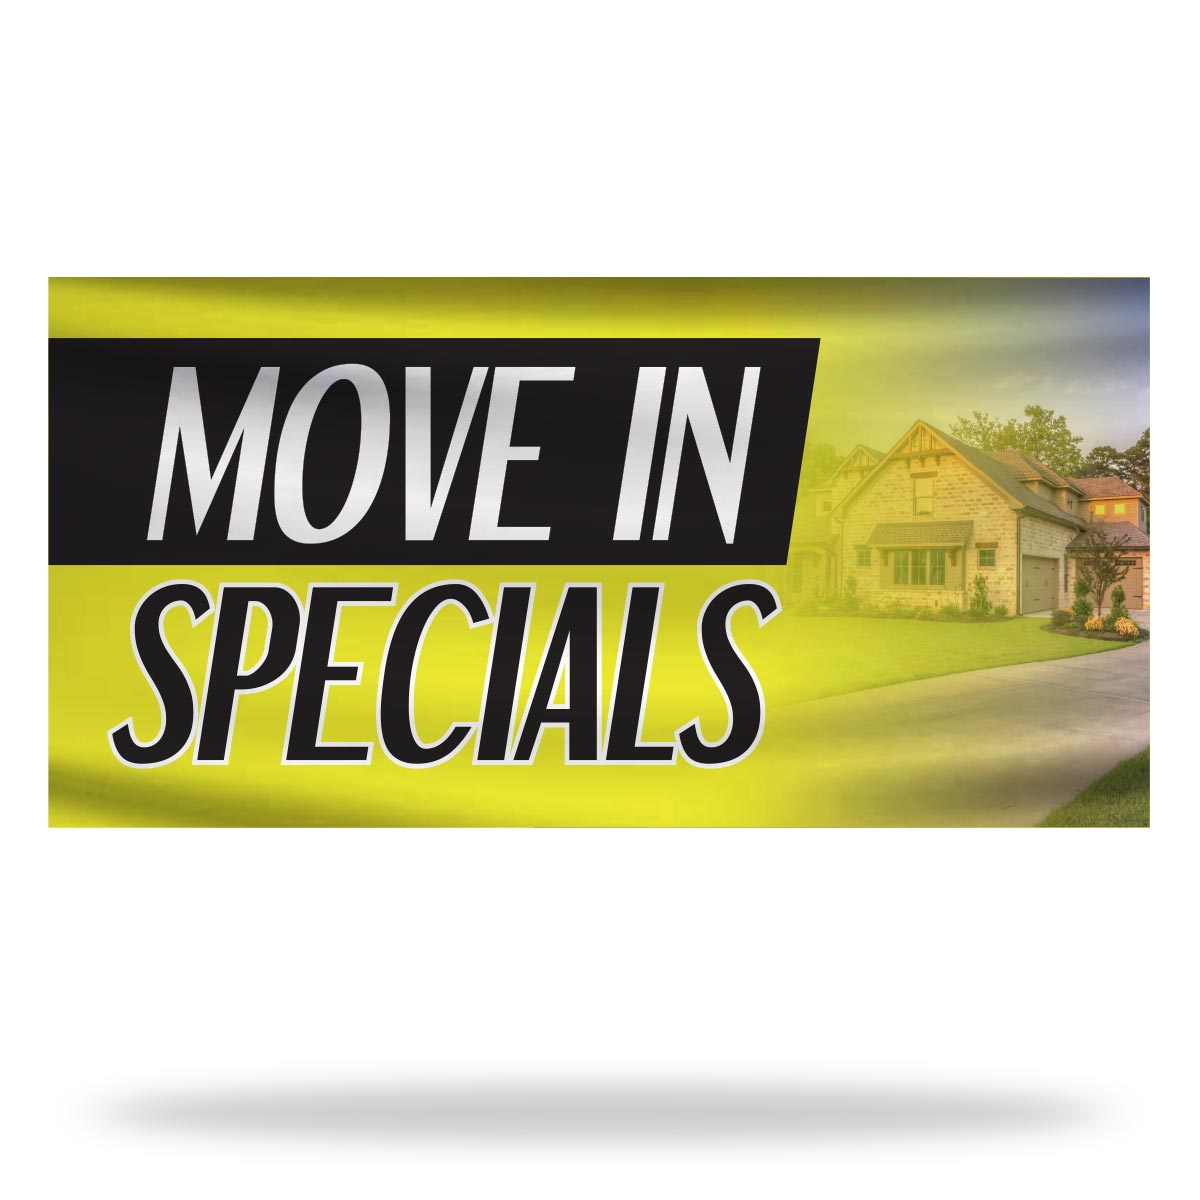 Move In Specials Flags & Banners Design 02